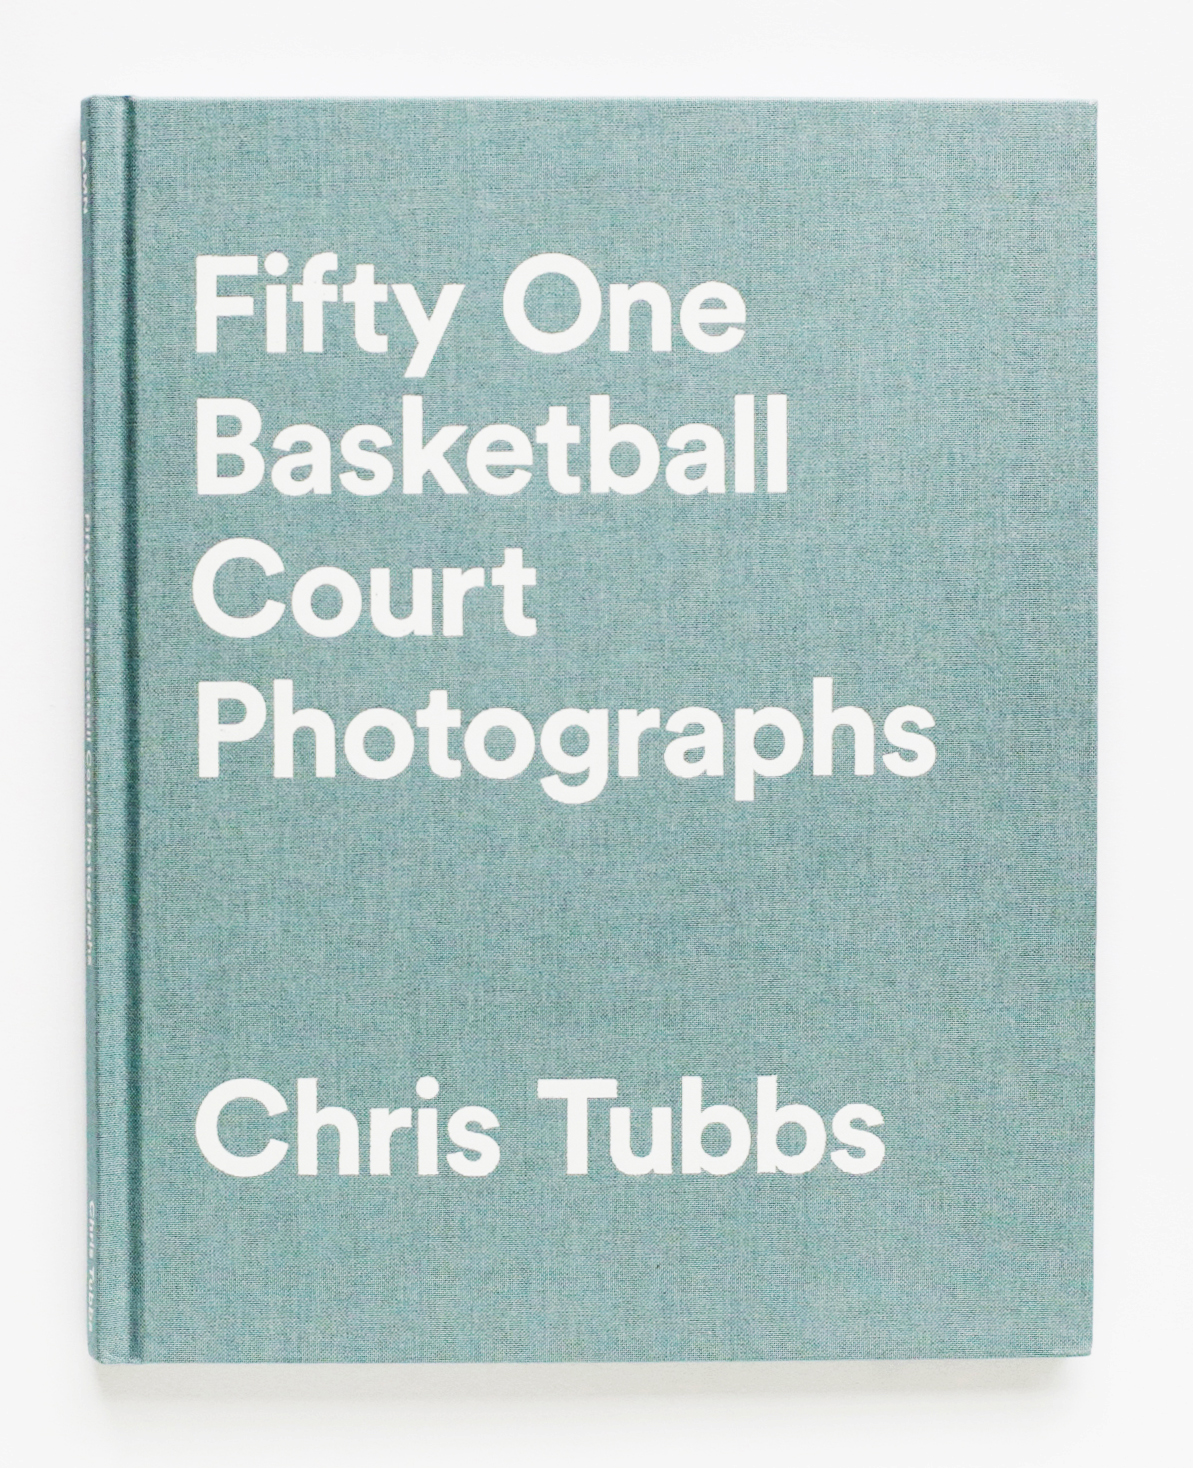 Chris Tubbs Book.jpg